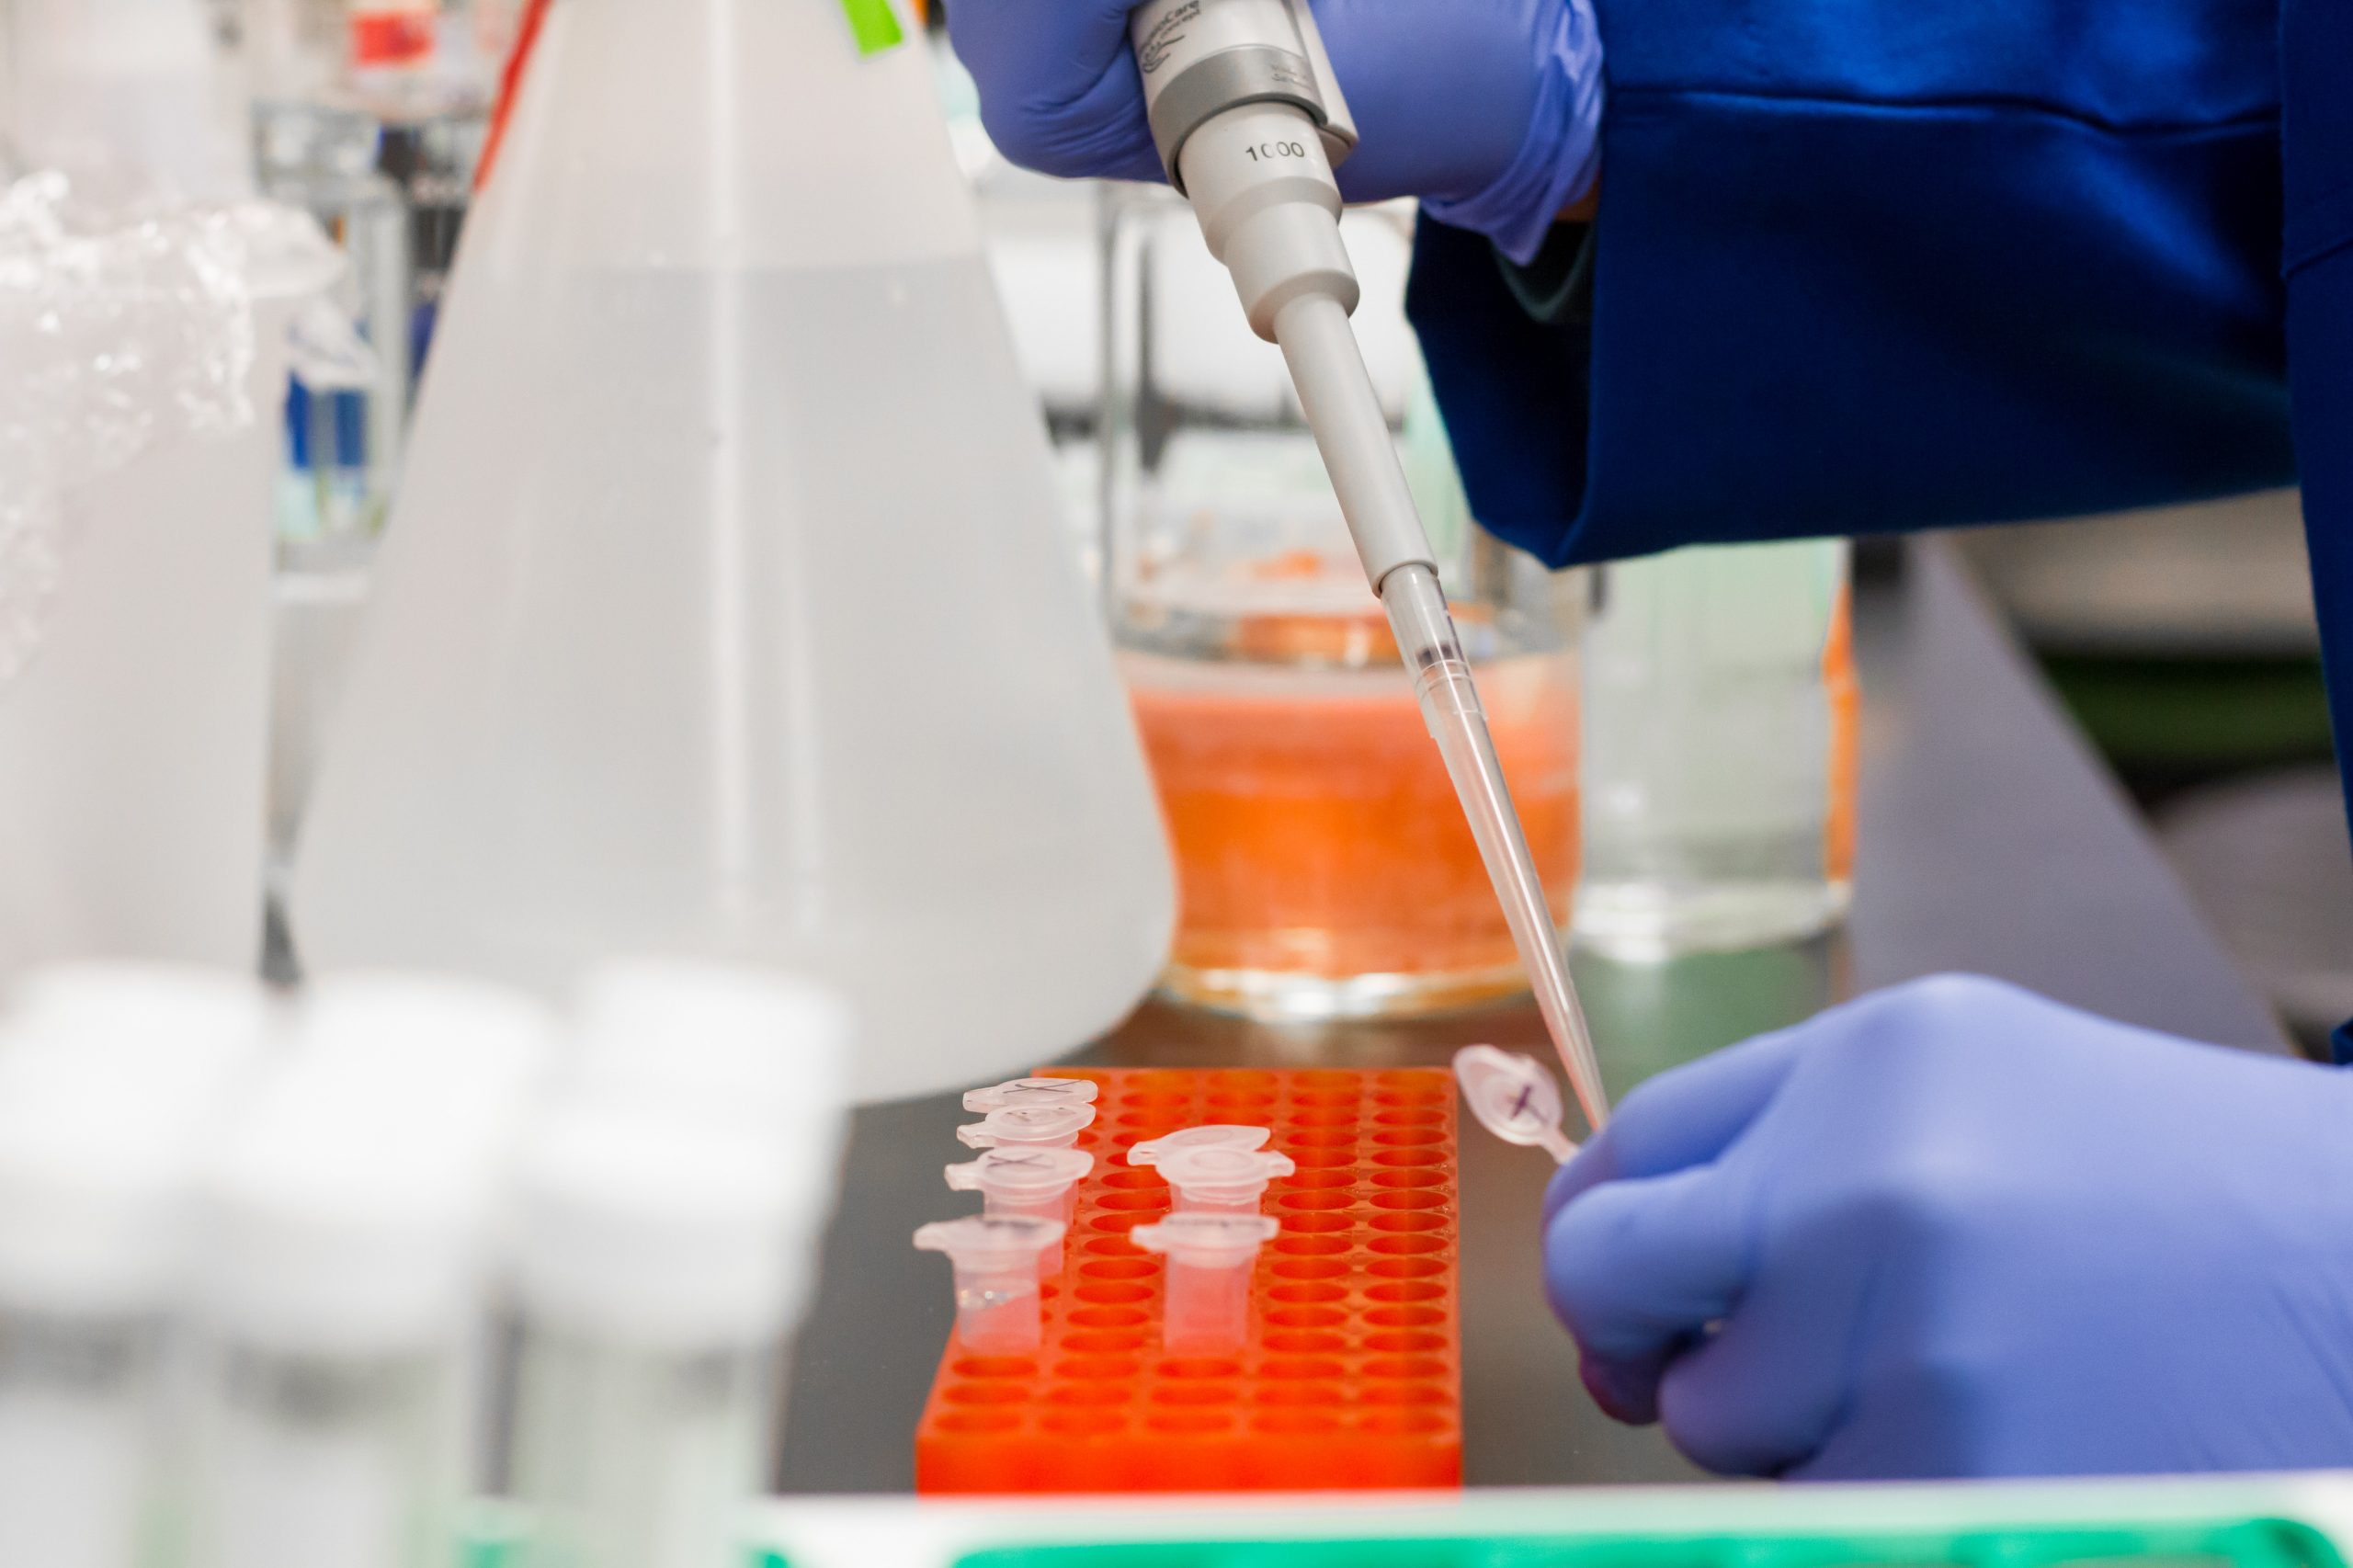 Faster Testing Method for Coronoravirus Coming to Long Island